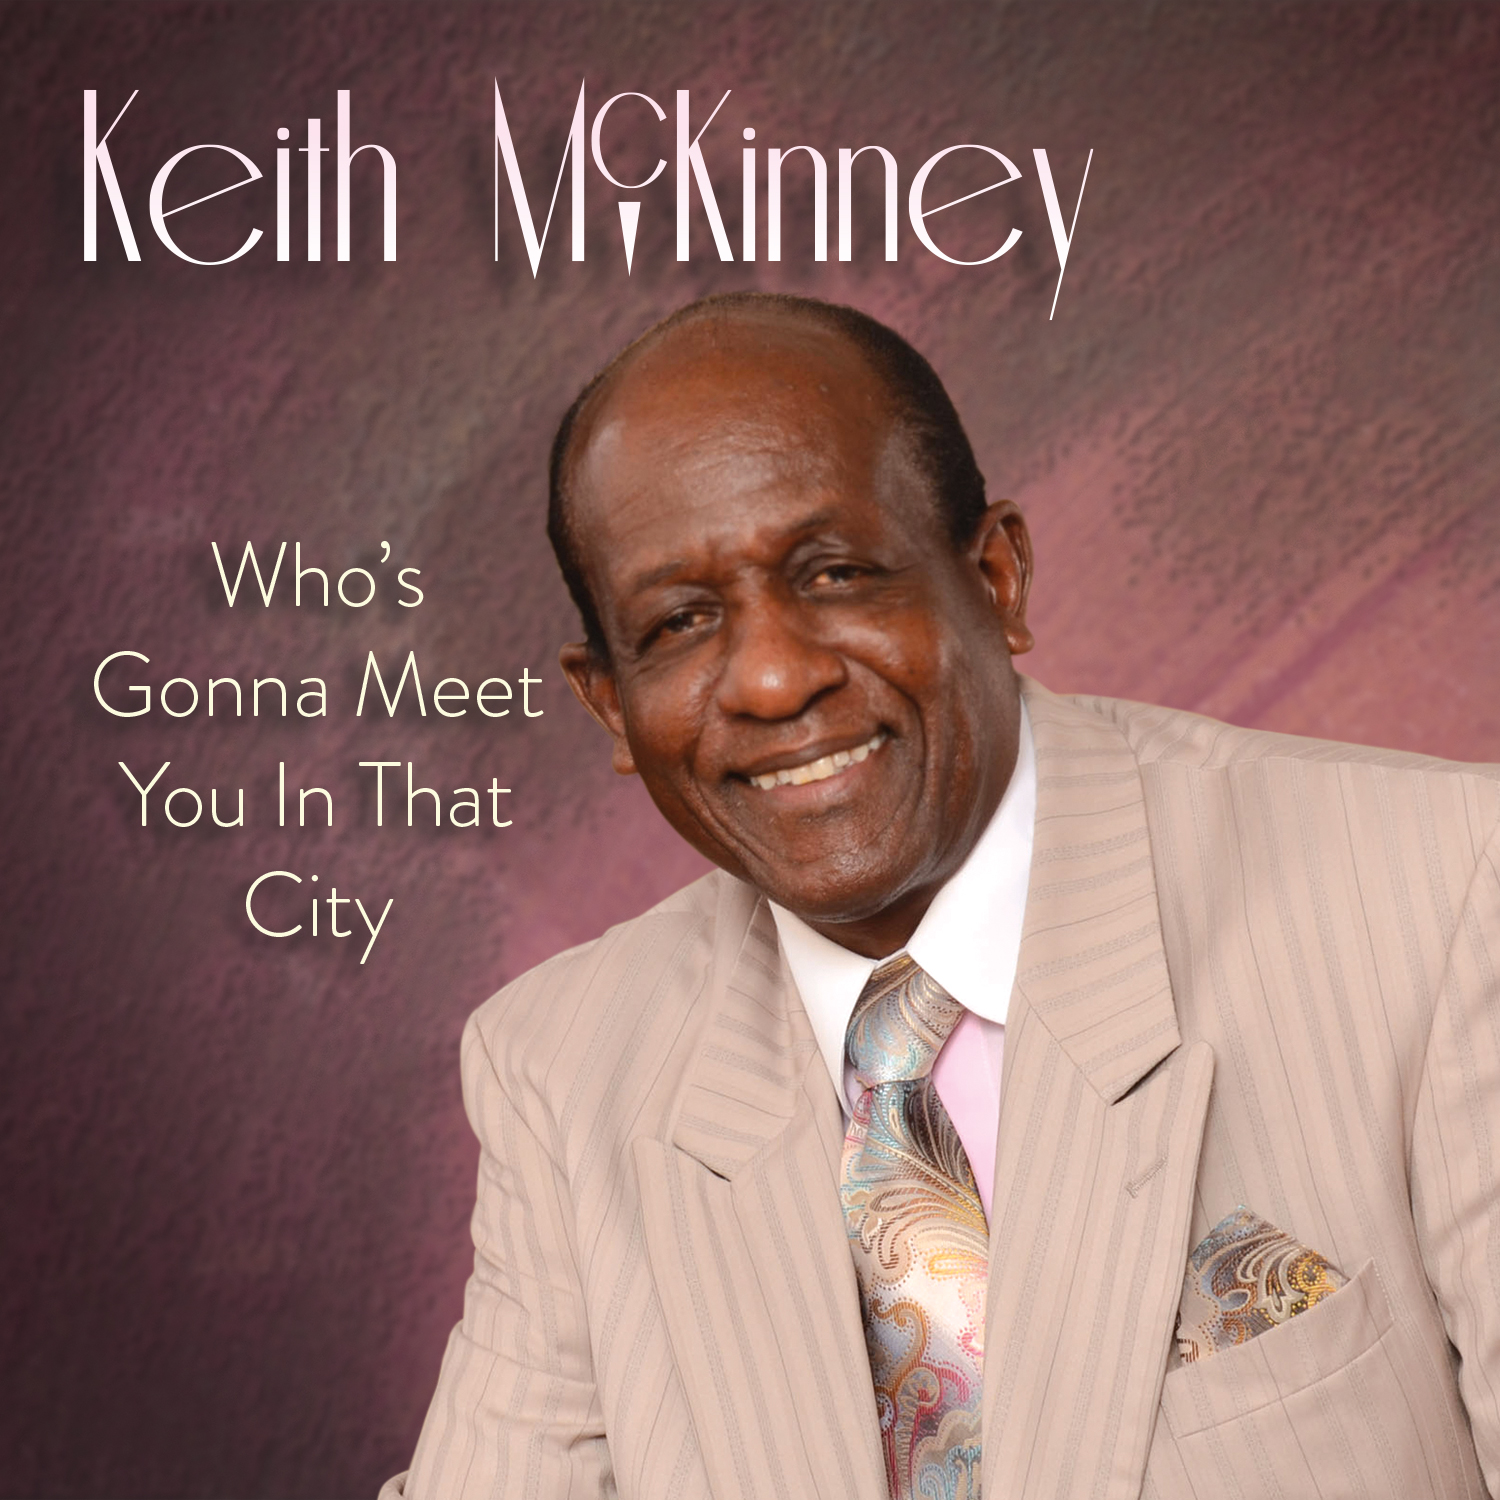 Keith McKinney Completes New Album